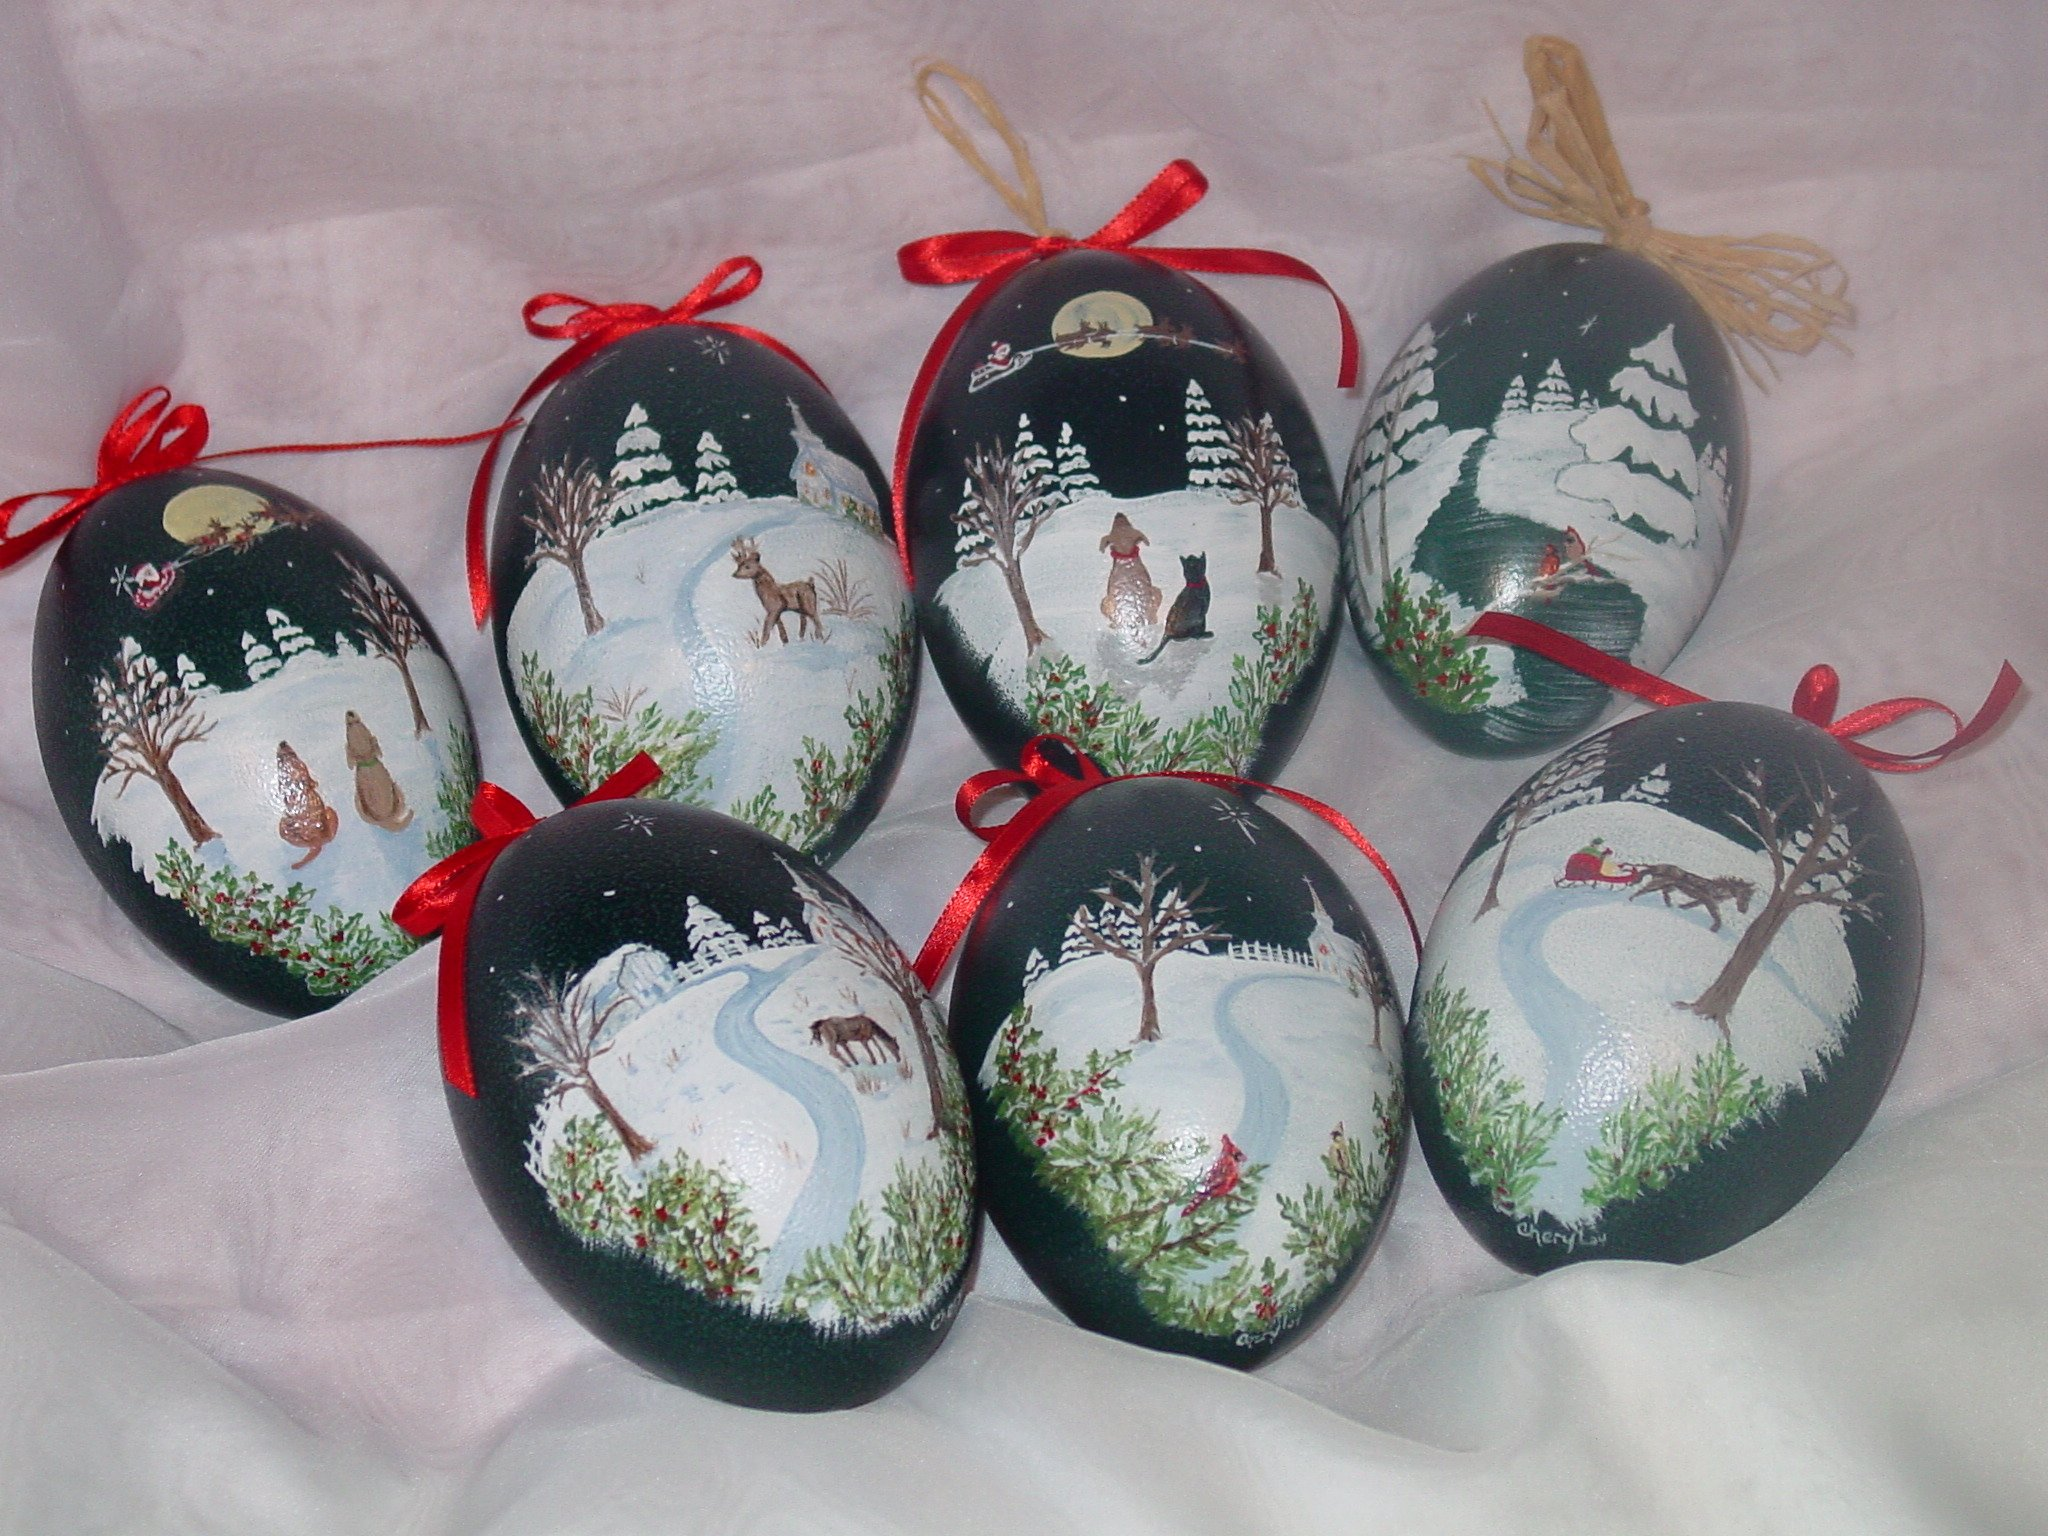 Holiday Painted Emu Eggs - Emu eggs are these lovely blue-green color. The hand paintings are covered with shellac to preserve the paintings for years to come, so they can be displayed each holiday season.